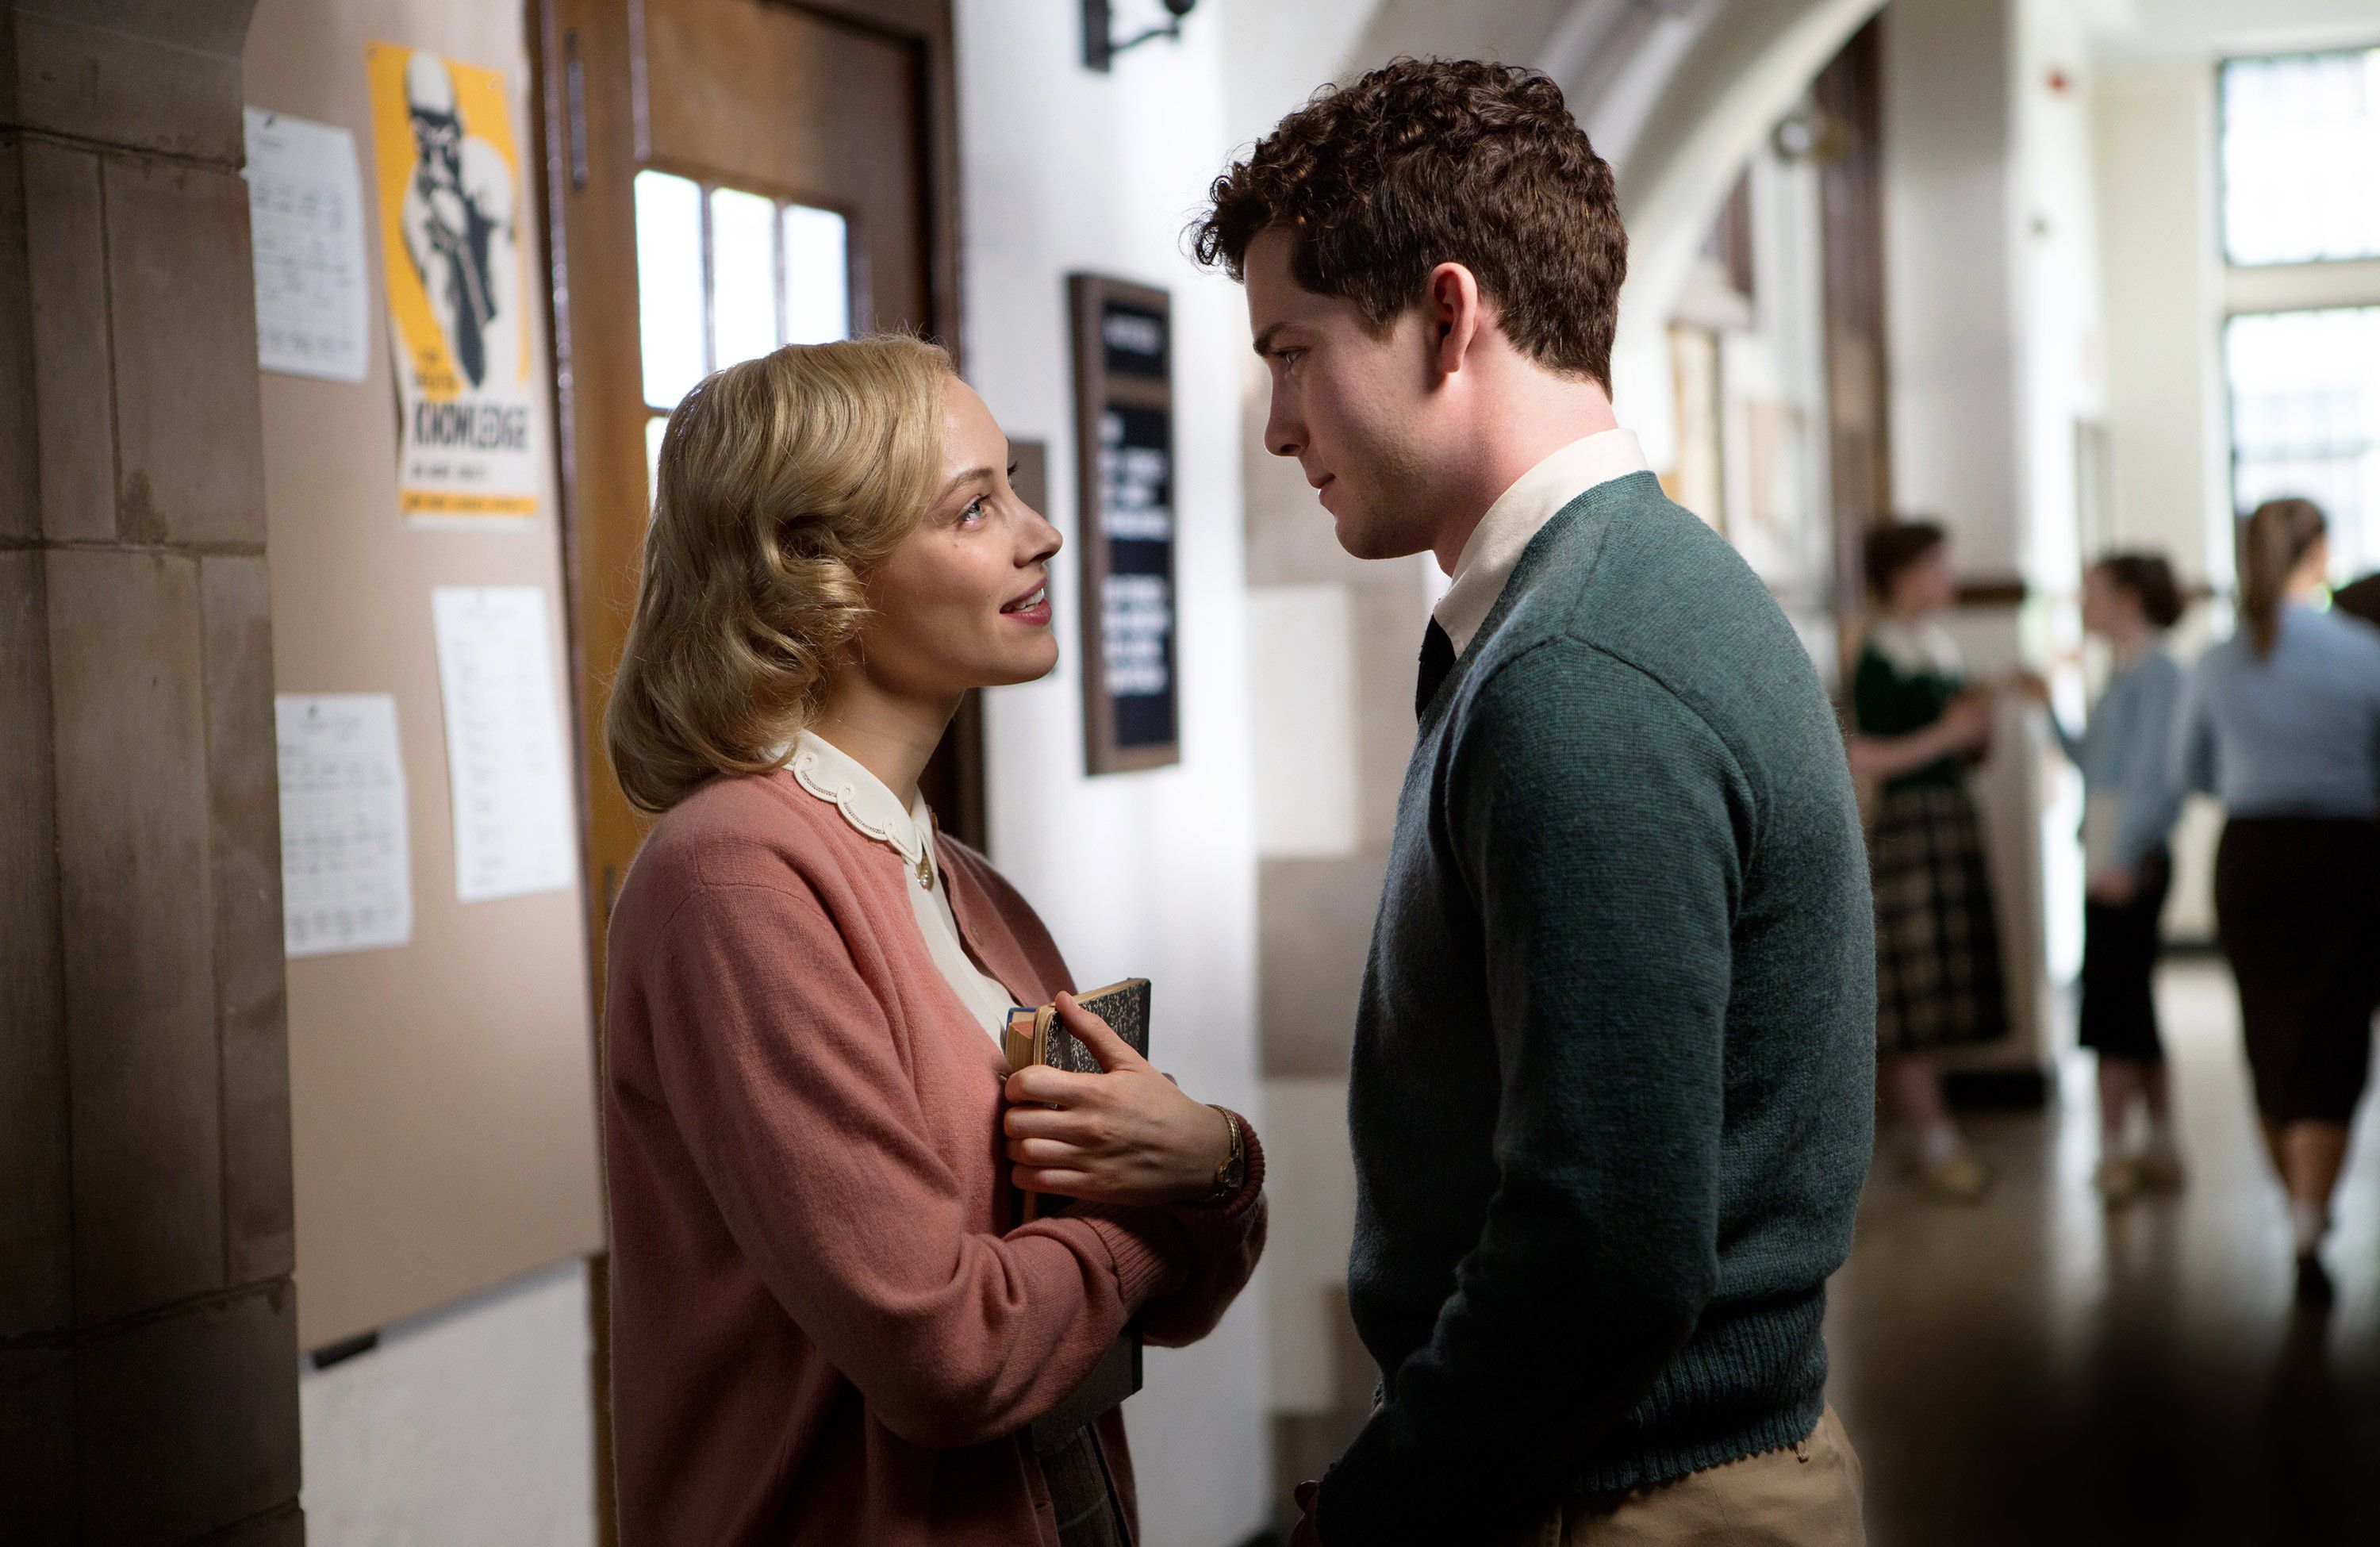 Sarah Gadon as Olivia Hutton with Logan Lerman as Marcus Messner in Indignation